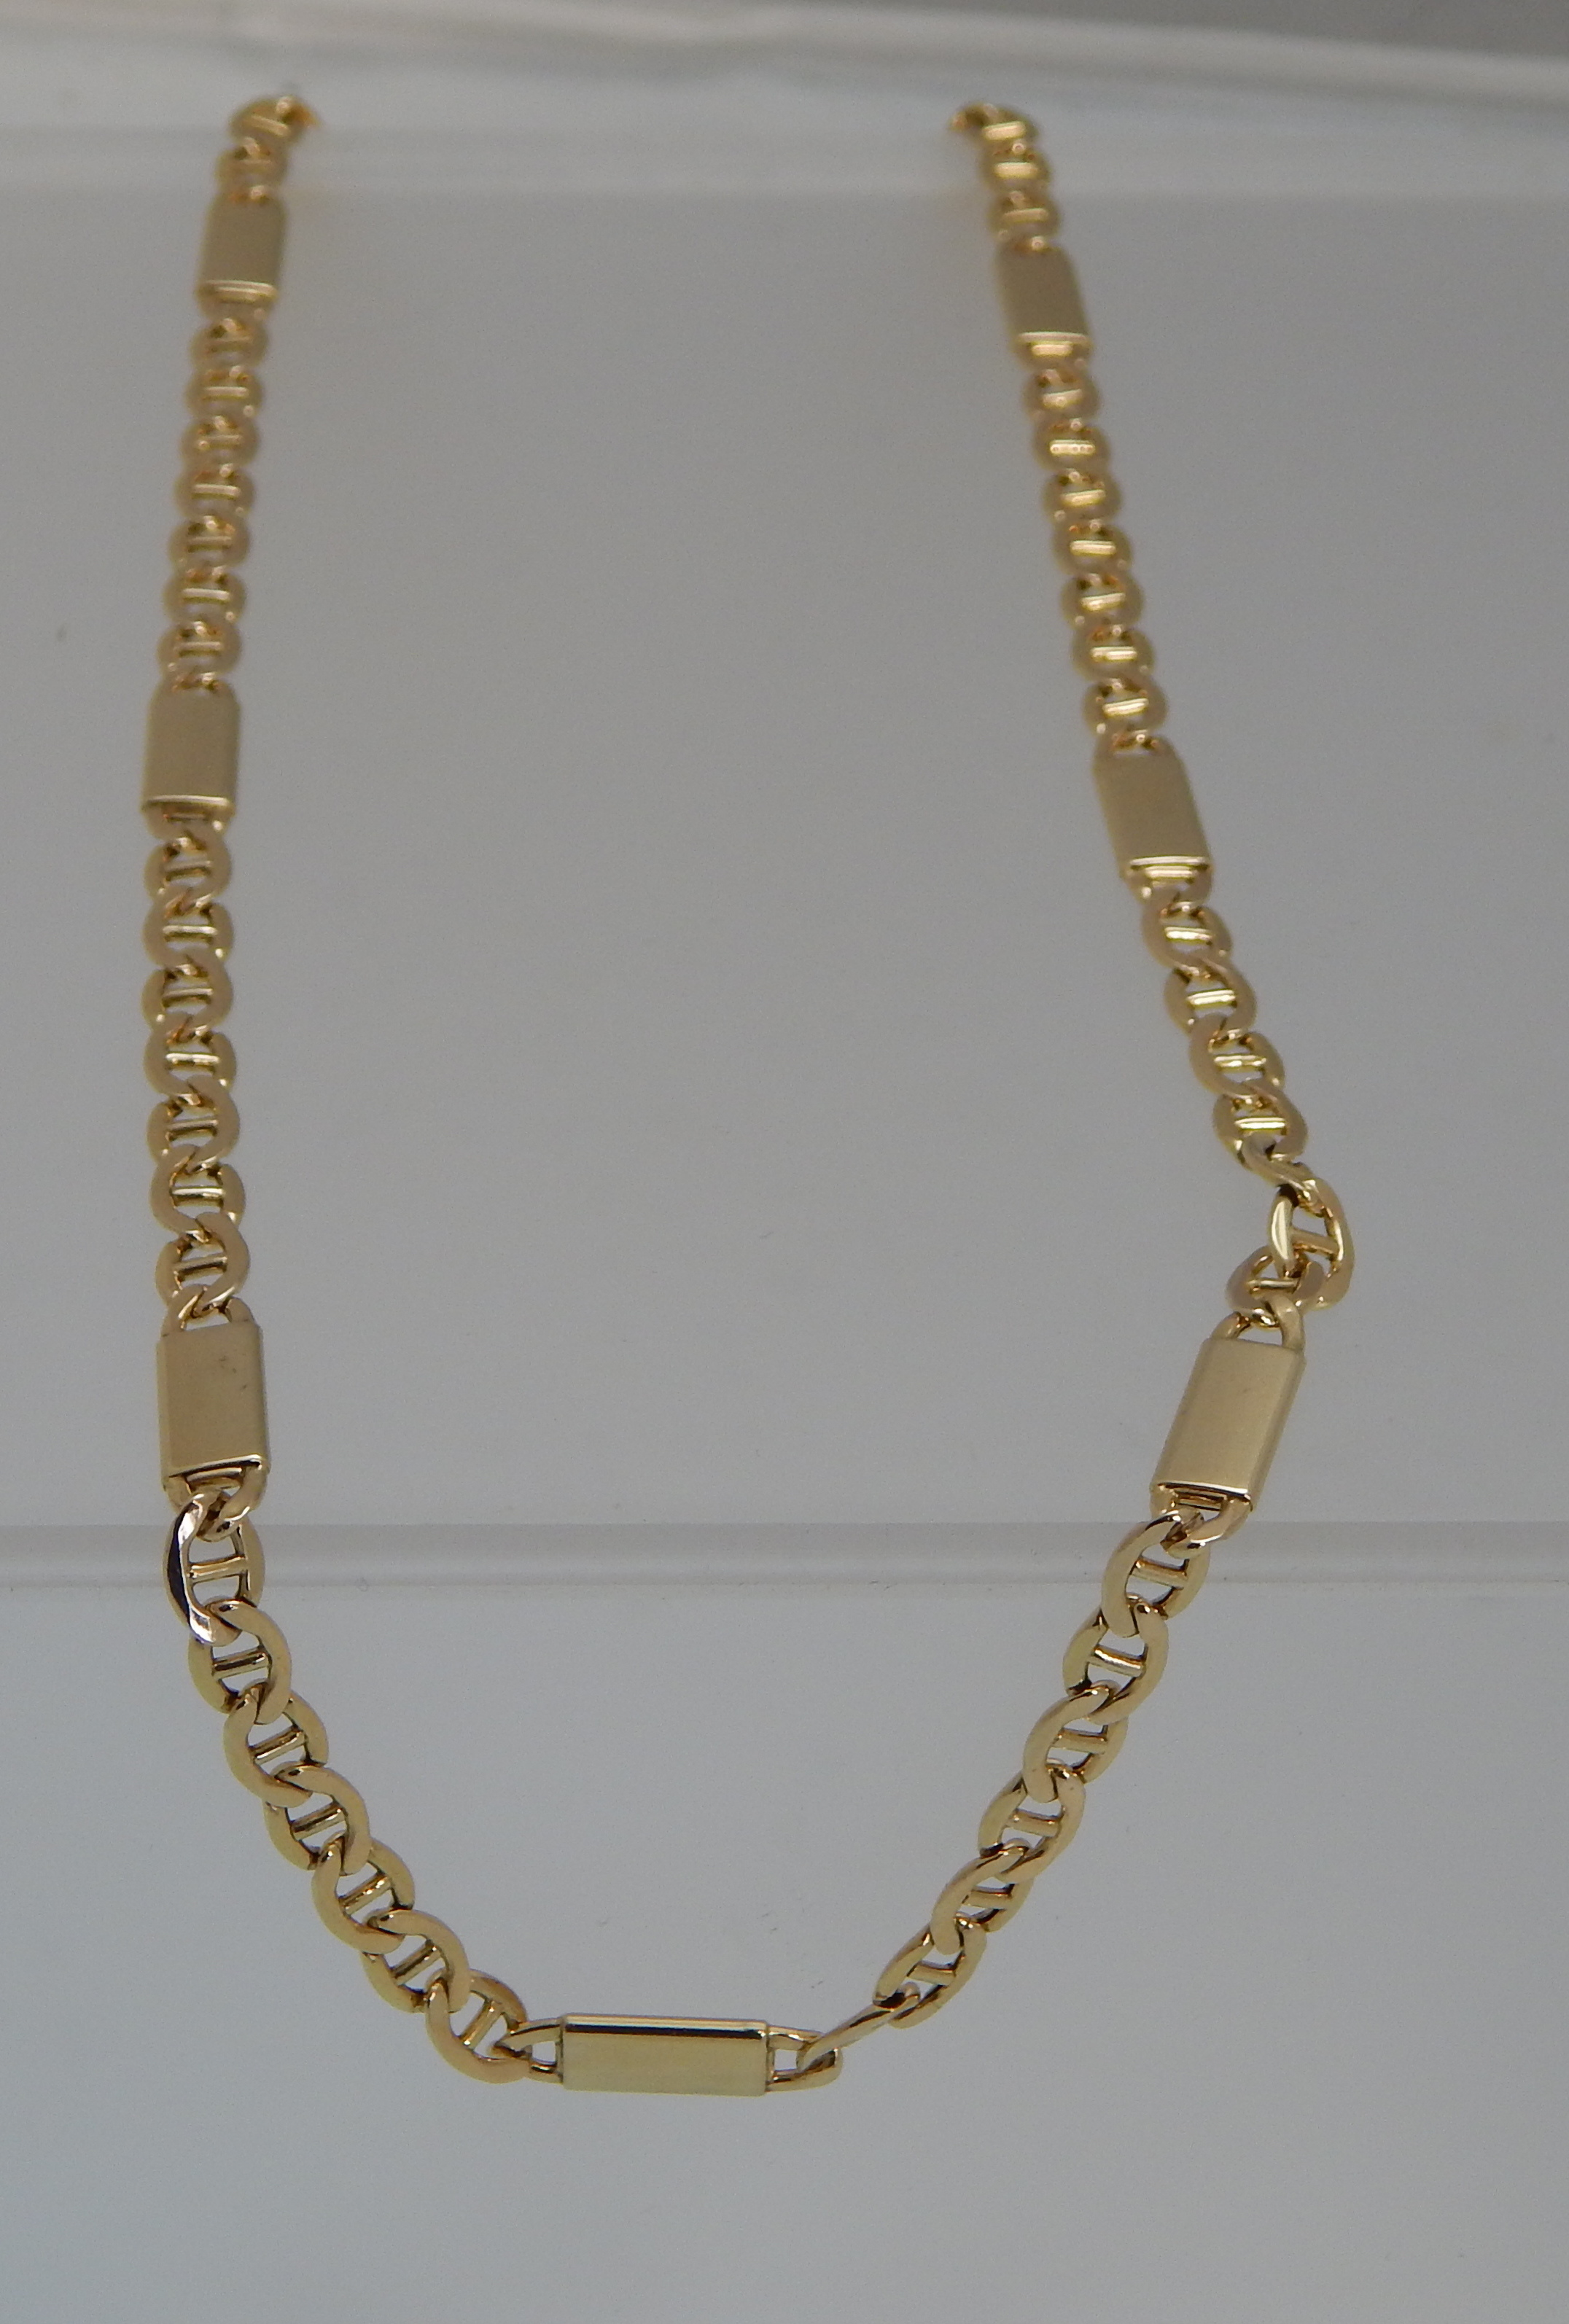 UNIQUE BEAUTIFUL MENS 10K GOLD CHAIN